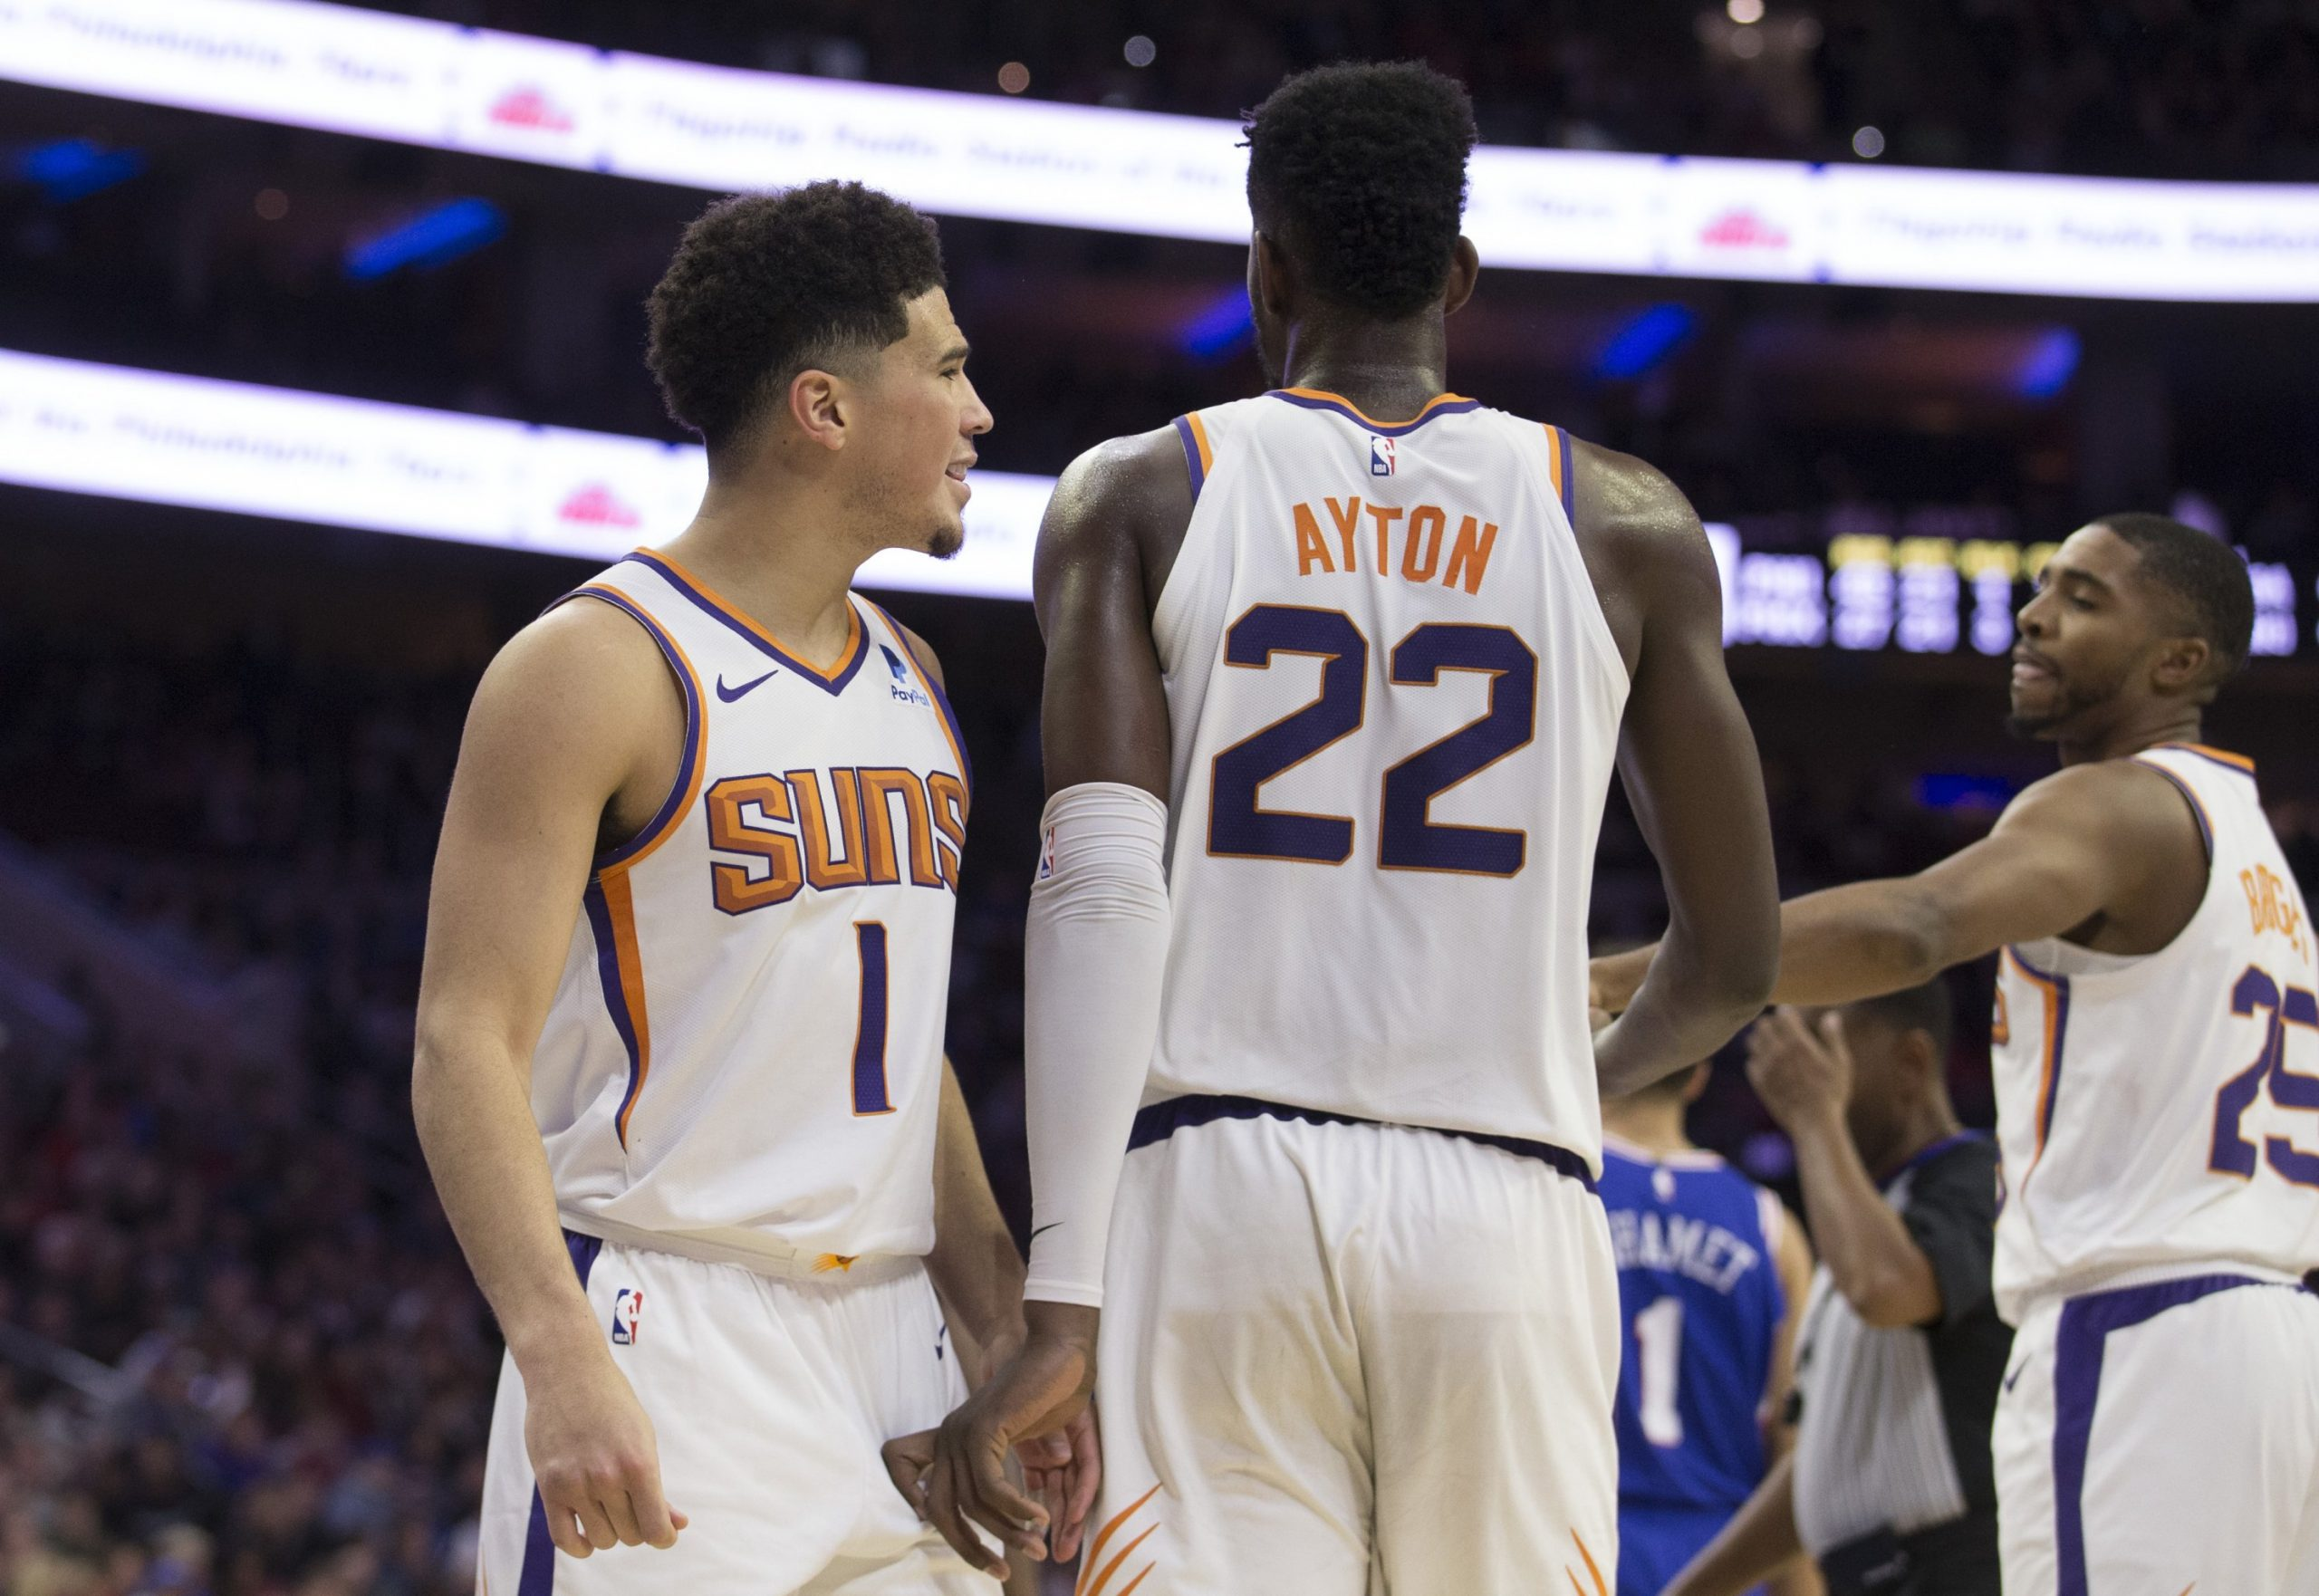 MIAMI, FLORIDA - FEBRUARY 25: Mikal Bridges #25, Deandre Ayton #22 and Kelly Oubre Jr. #3 of the Phoenix Suns huddle against the Miami Heat during the first half at American Airlines Arena on February 25, 2019 in Miami, Florida. NOTE TO USER: User expressly acknowledges and agrees that, by downloading and or using this photograph, User is consenting to the terms and conditions of the Getty Images License Agreement. (Photo by Michael Reaves/Getty Images)